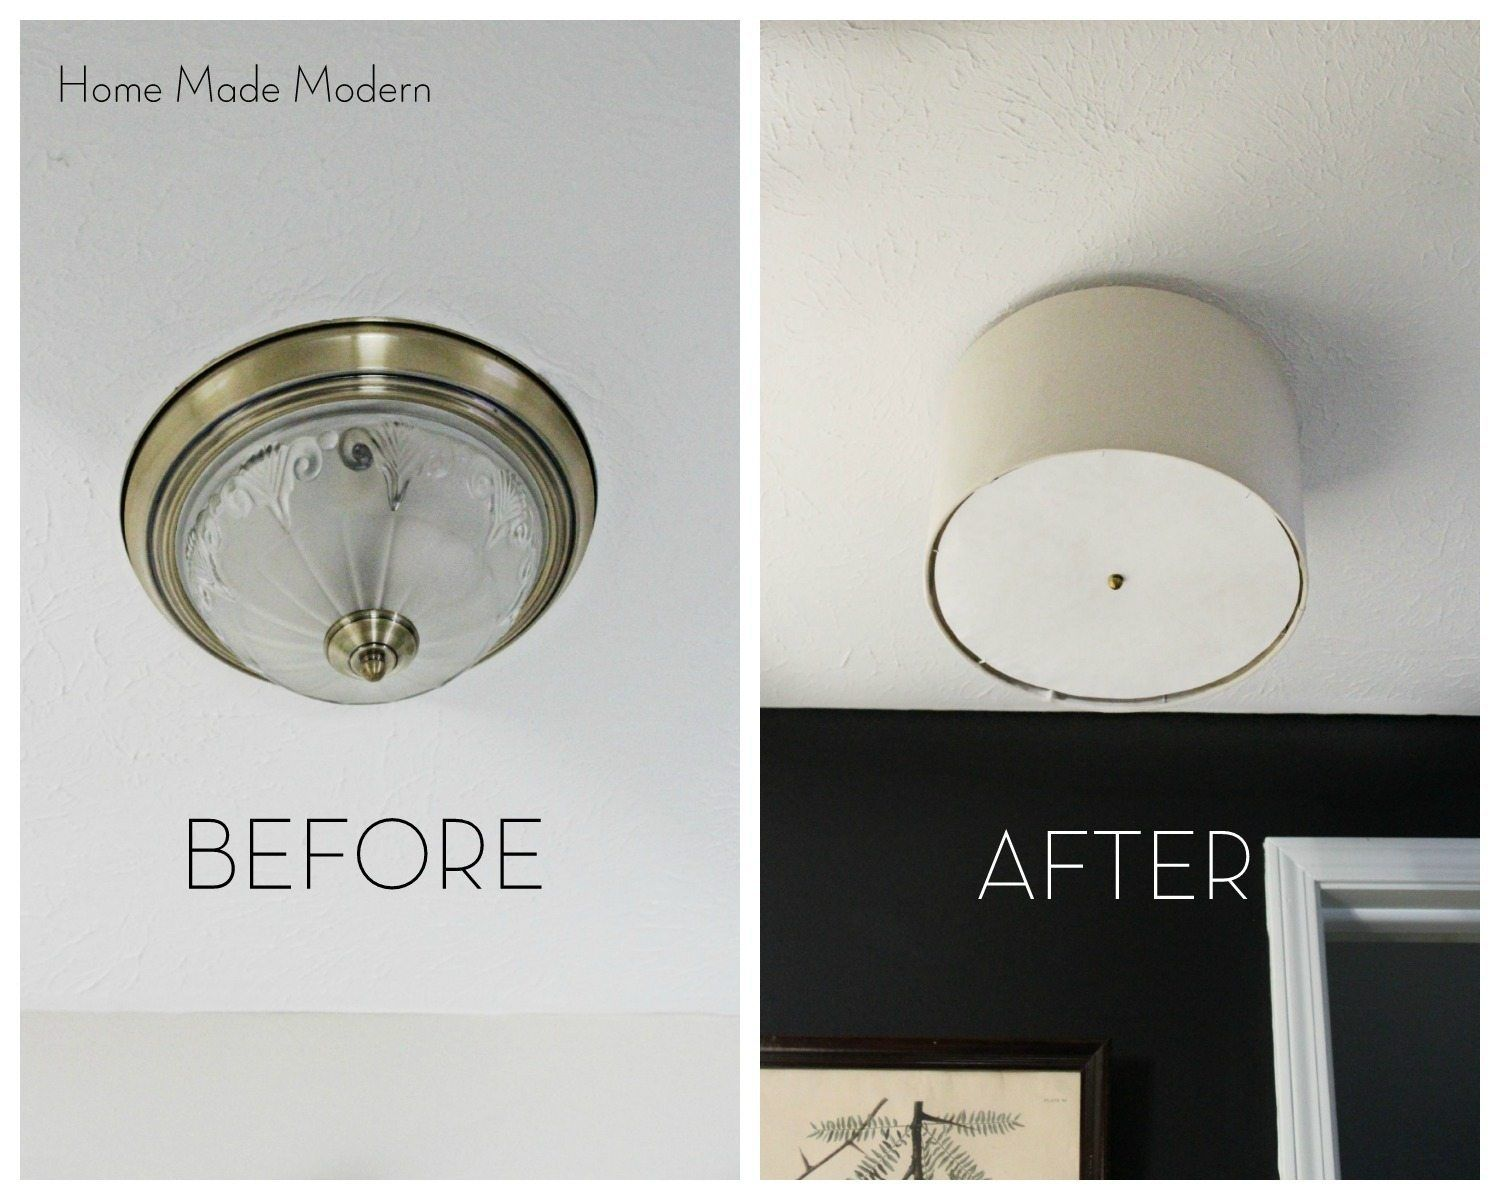 diy flush mount shade with freezer paper diffuser | Chelsea ...